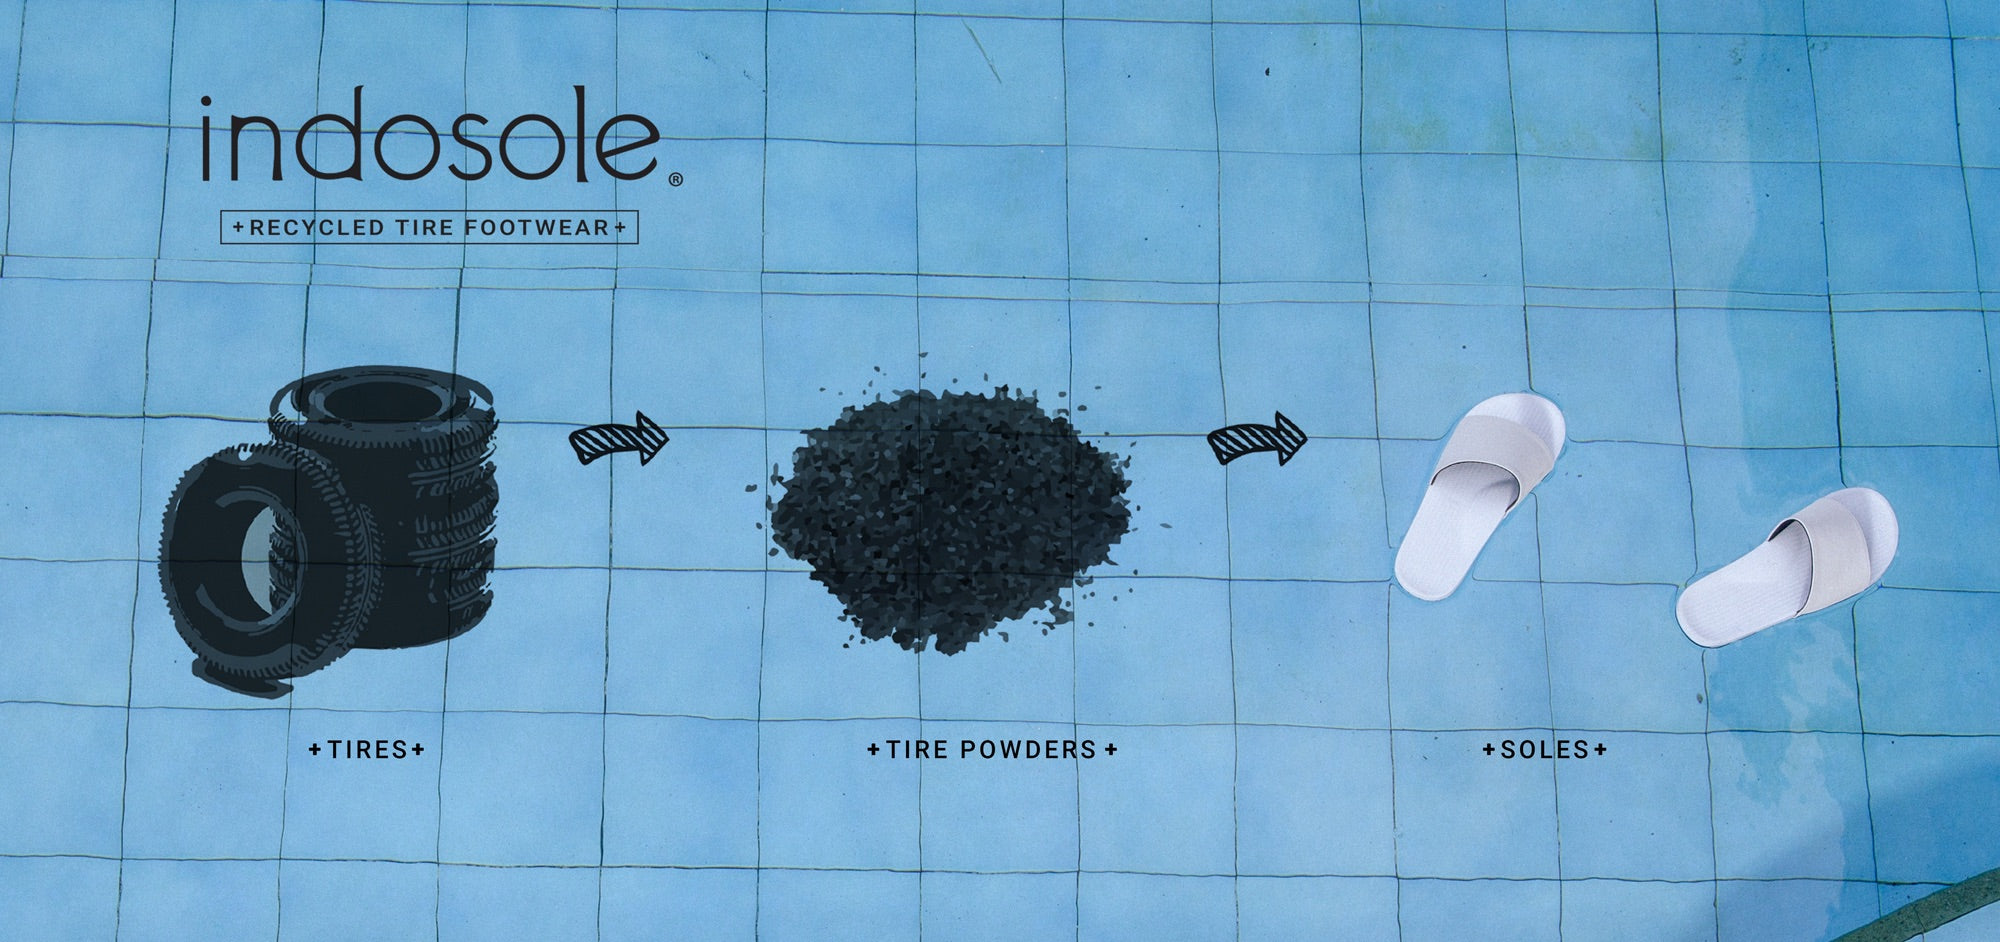 Indosole infographic: from tires to tire powder, through to flip flops.